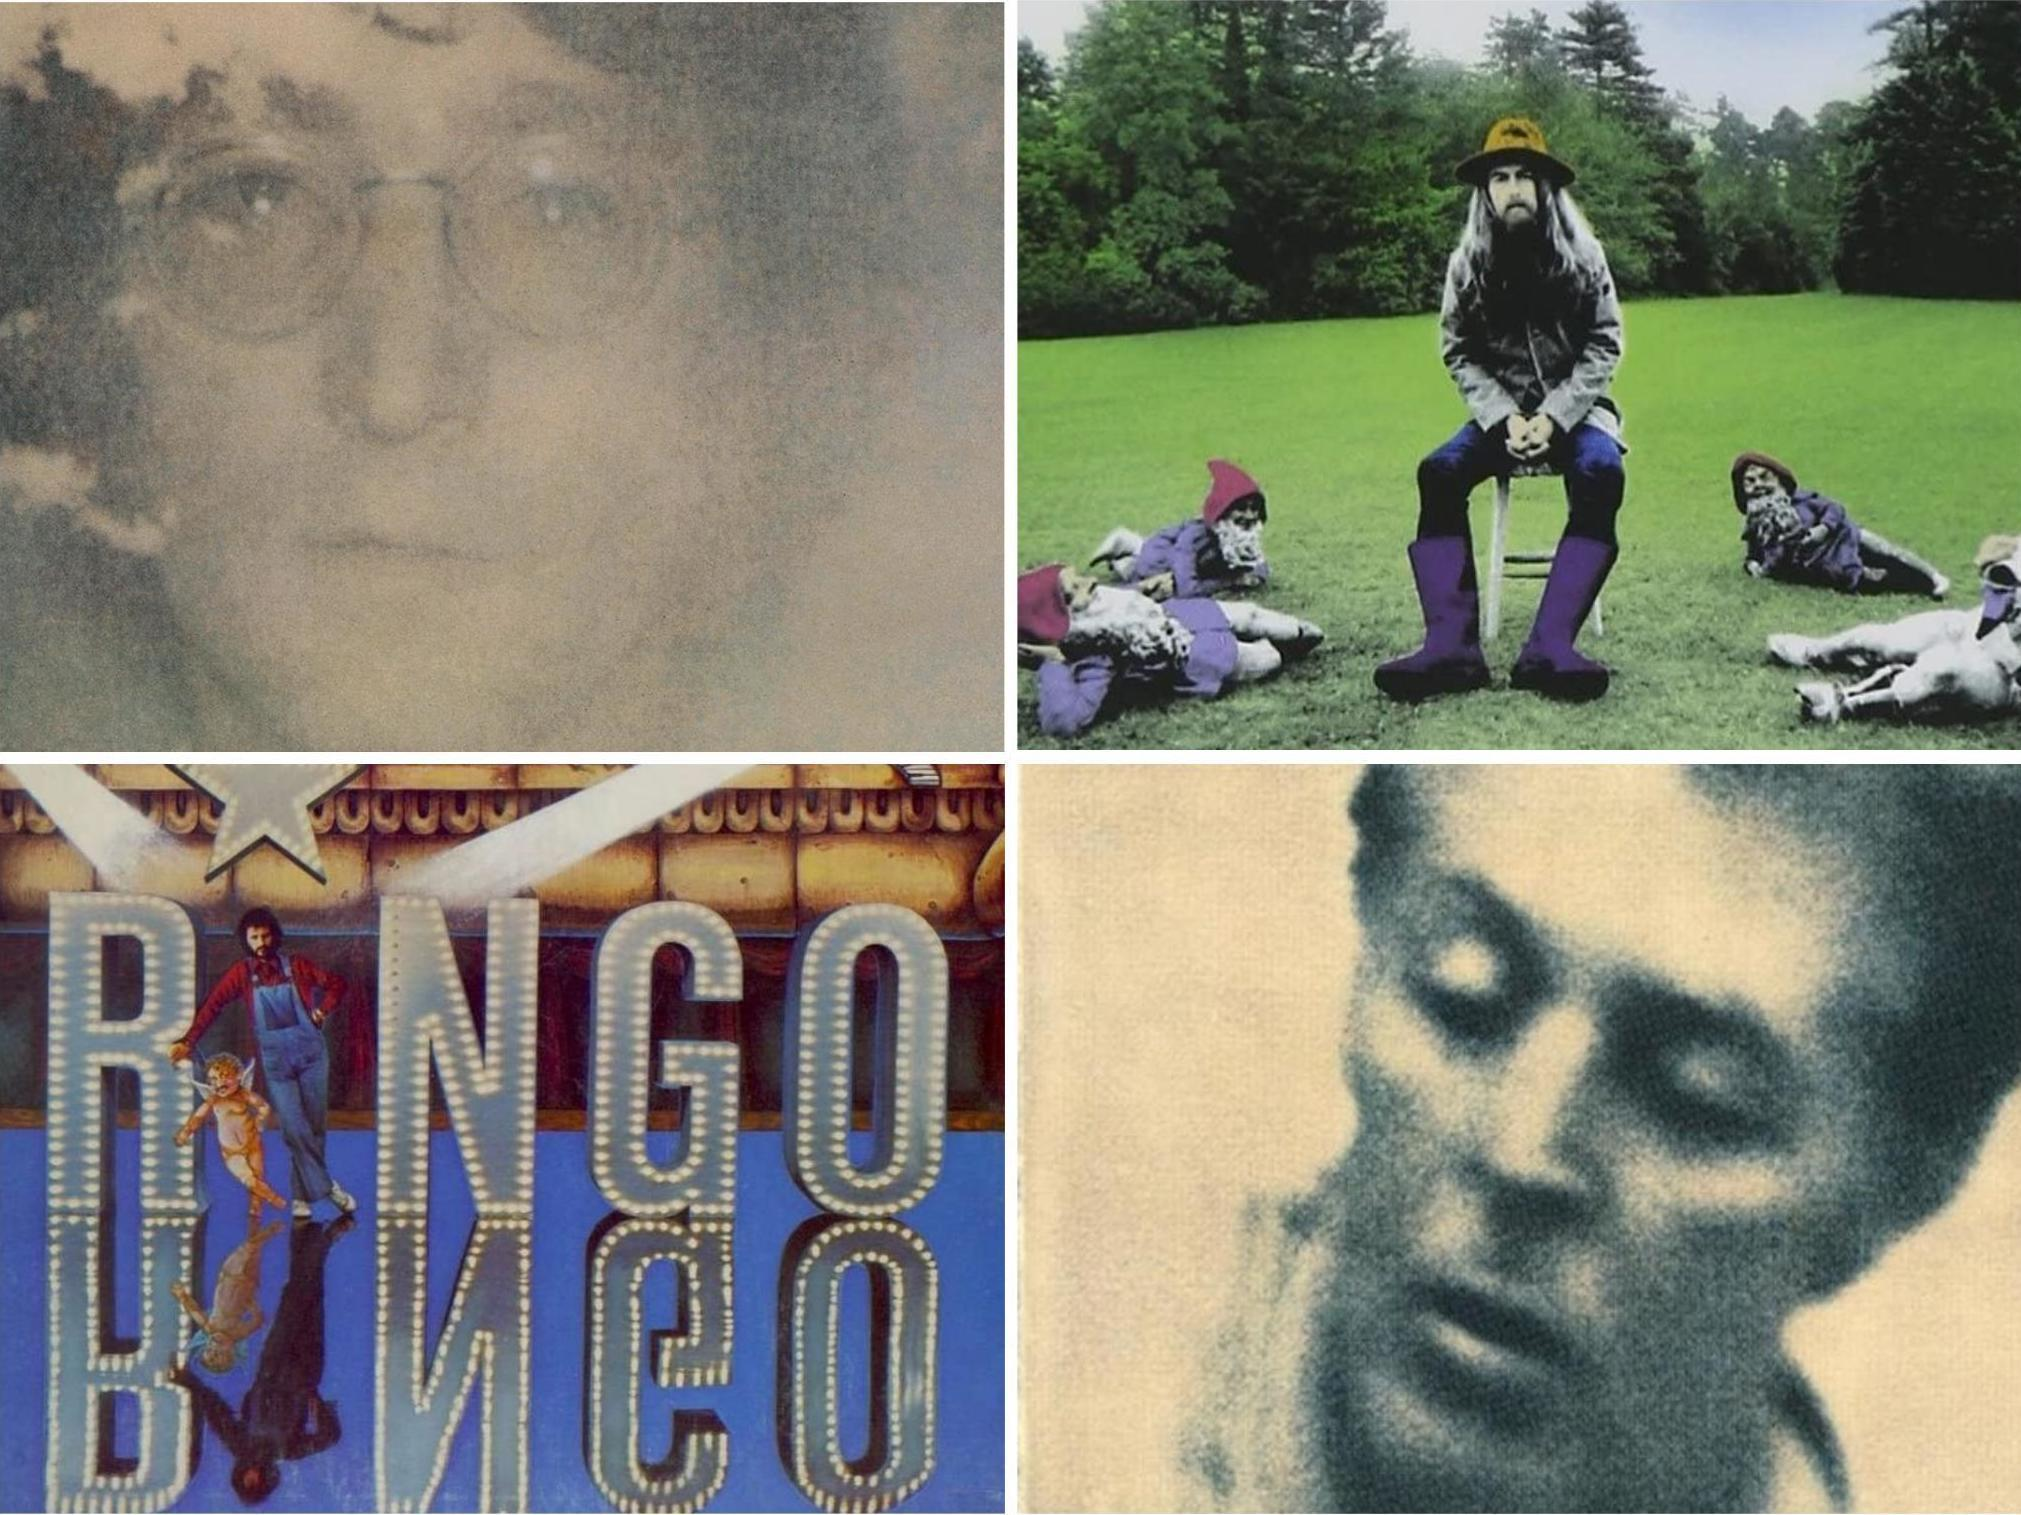 The Beatles: Their 10 best solo albums ranked, from Flaming Pie to Imagine